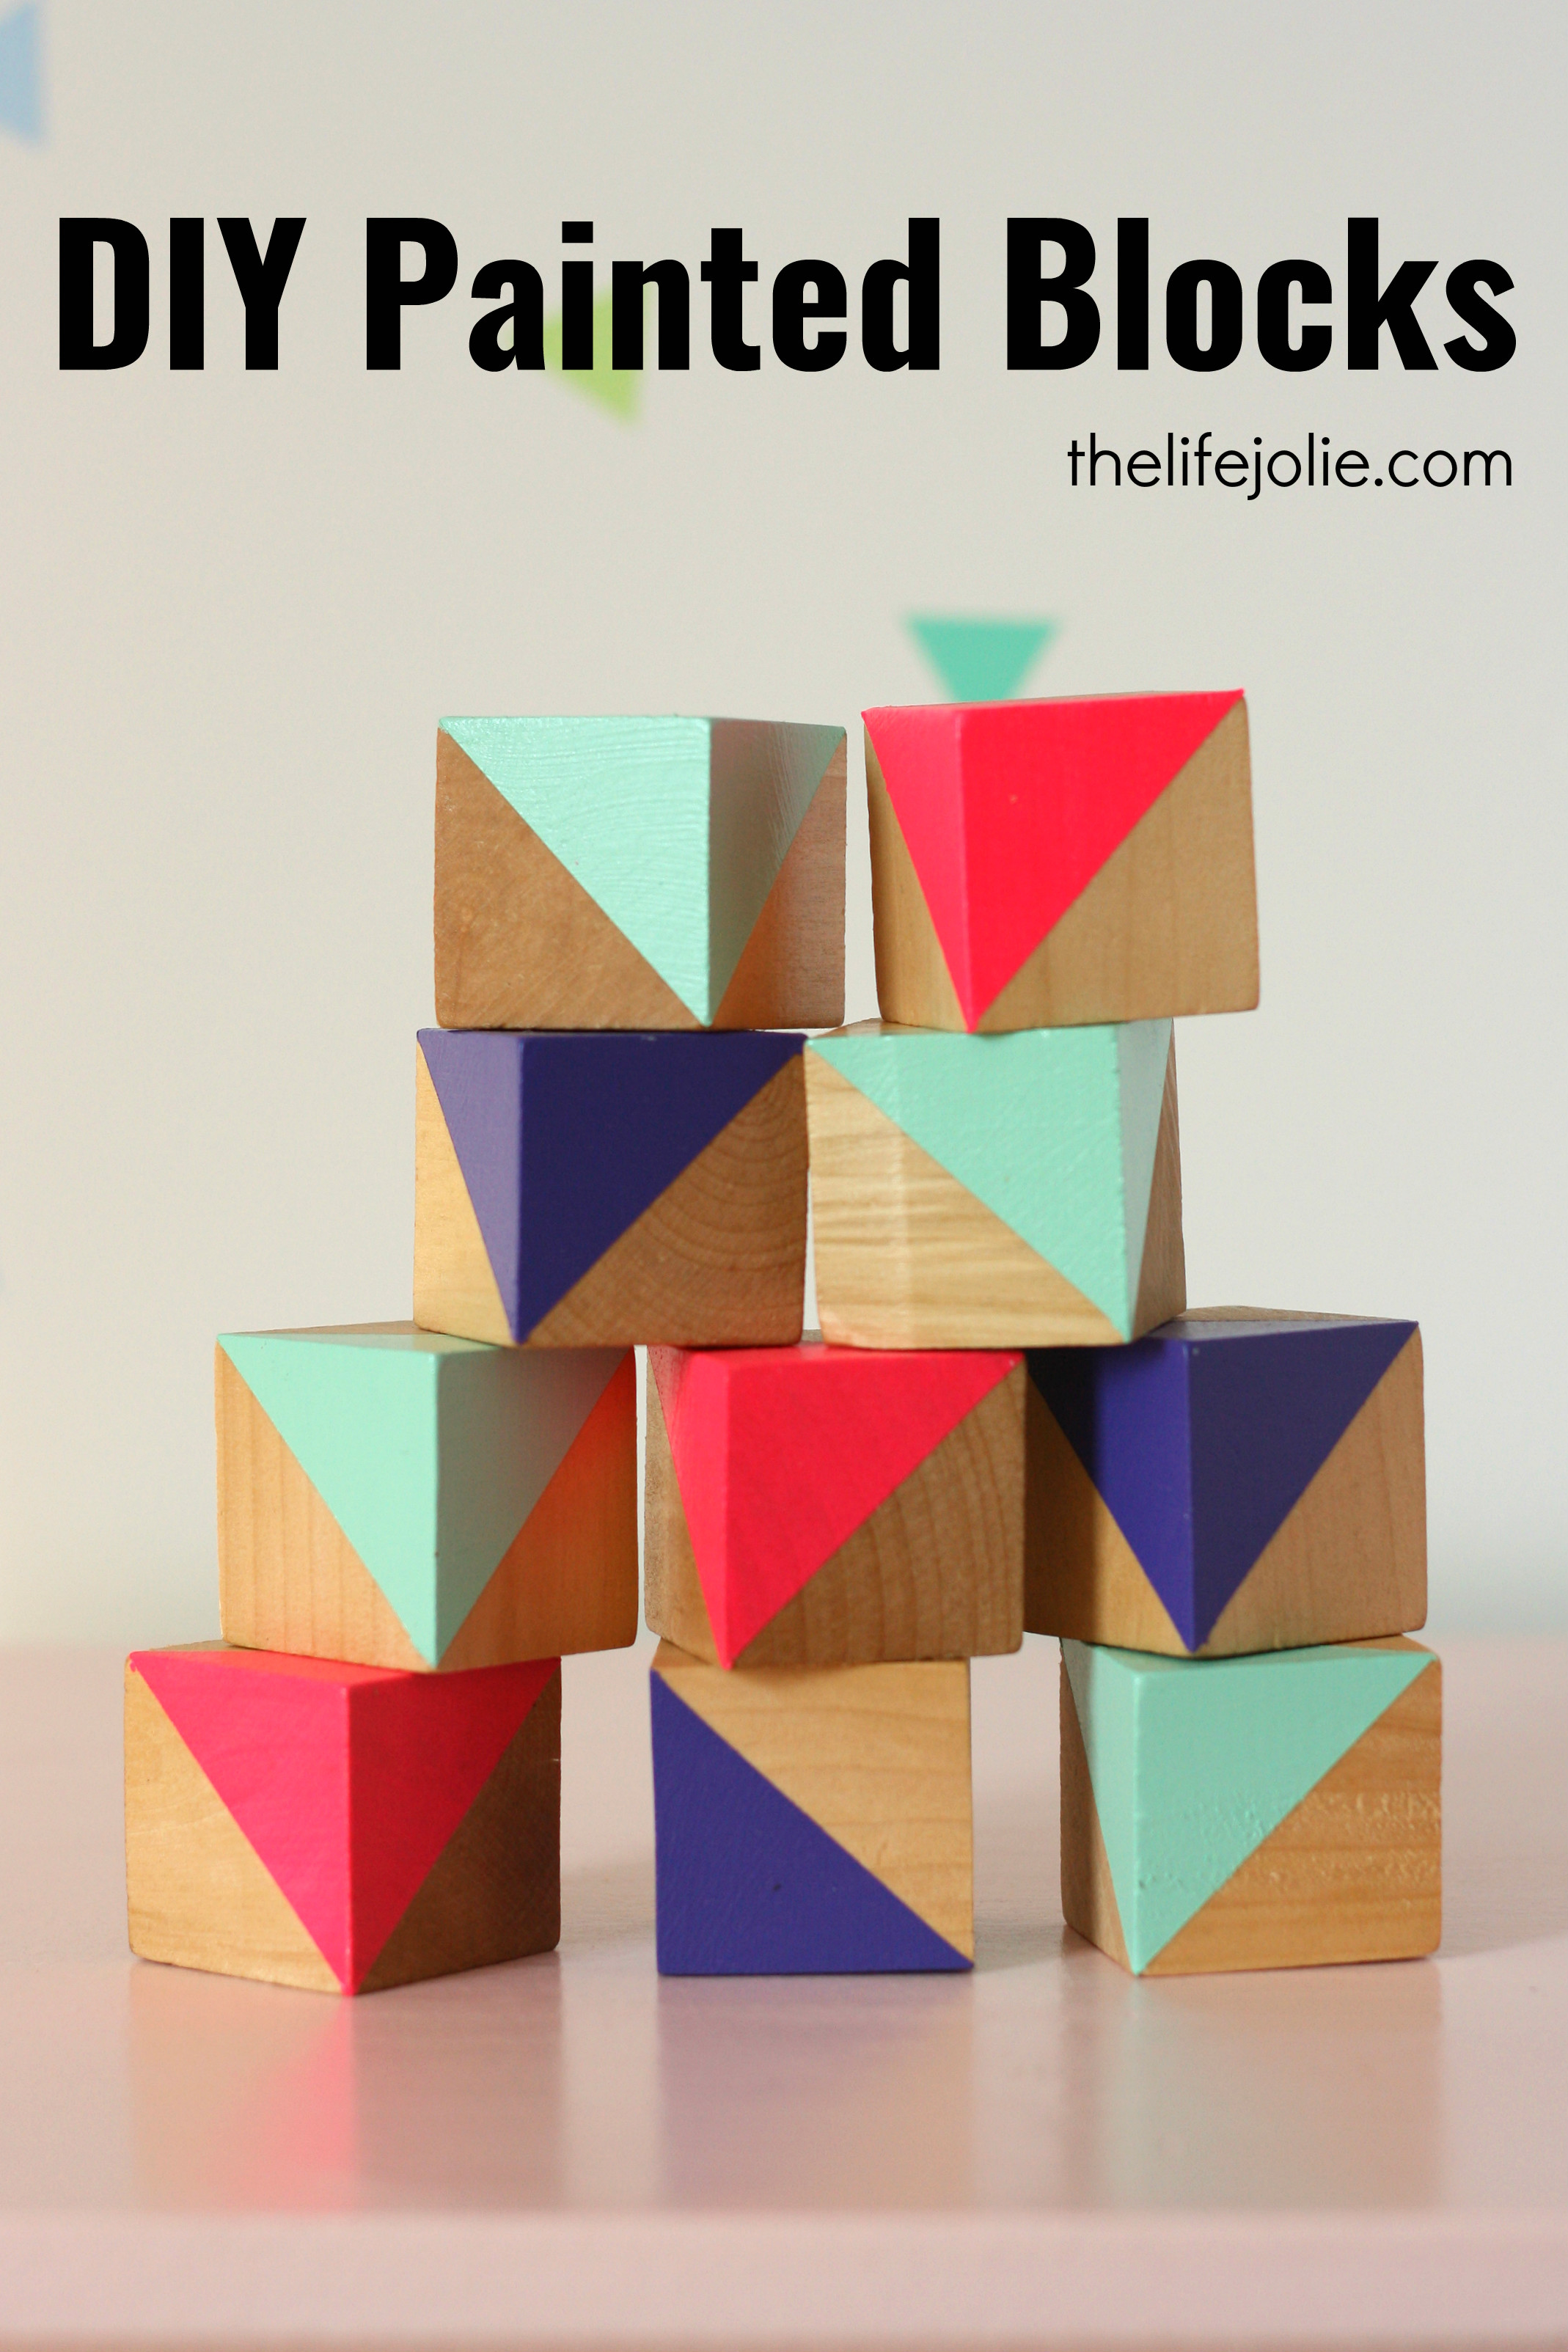 These DIY painted blocks are a fun way to add a decorative, colorful accent into a kids room or nursery. They're very easy to make with this simple tutorial and look so cute!